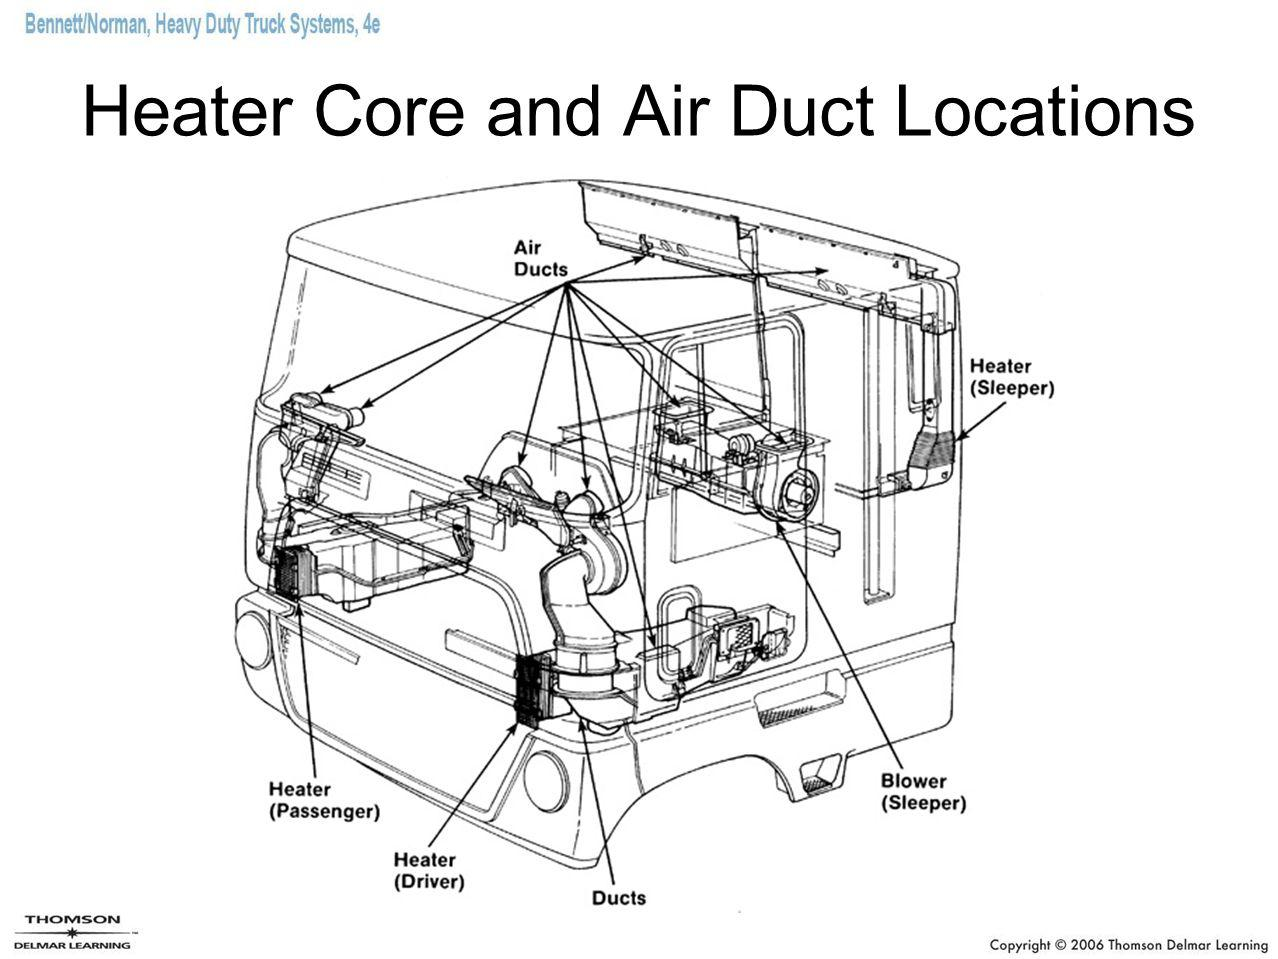 Heater Core and Air Duct Locations